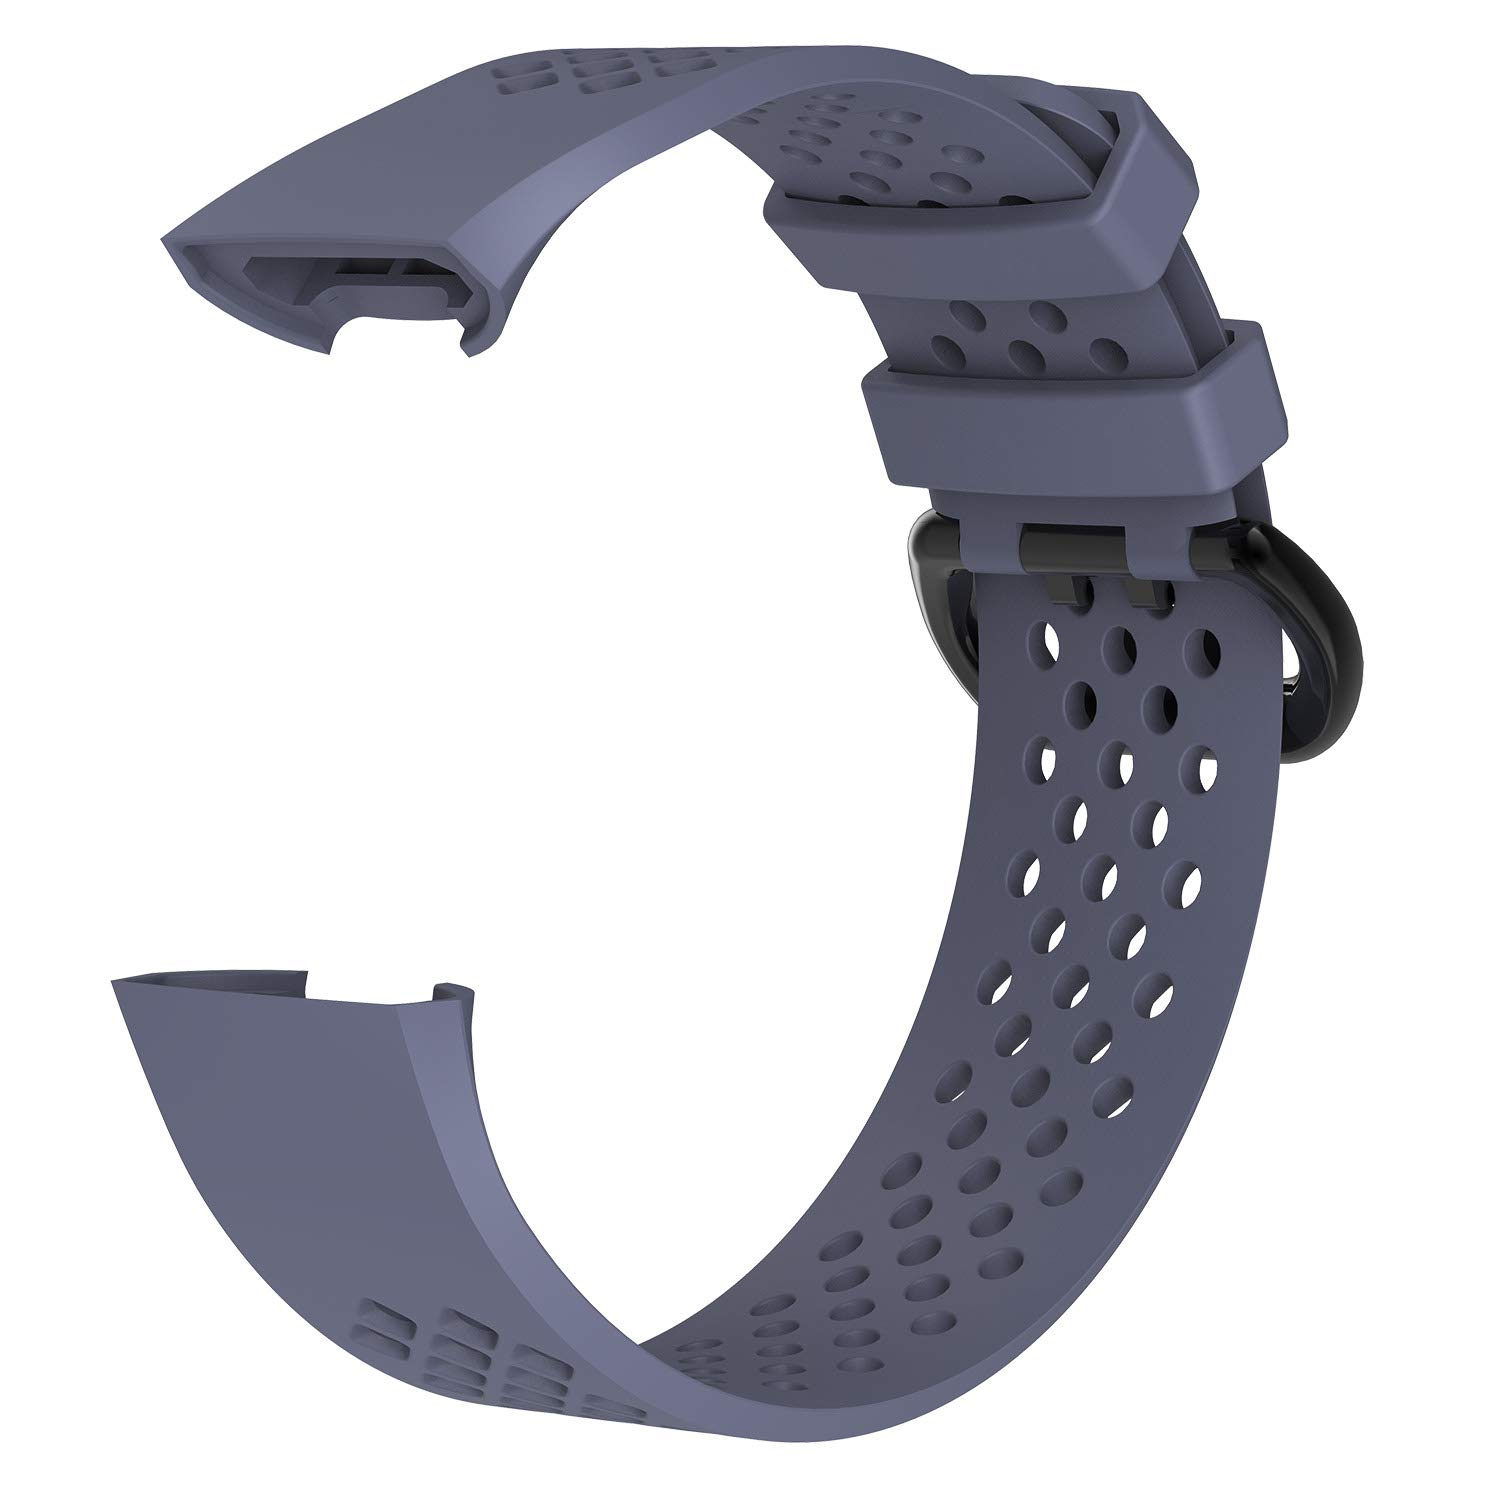 New Soft Silicone Replacement WatchBand Strap Band Wristband for Fitbit Charge 3 ZSZCXD Compatible for Fitbit Charge 3